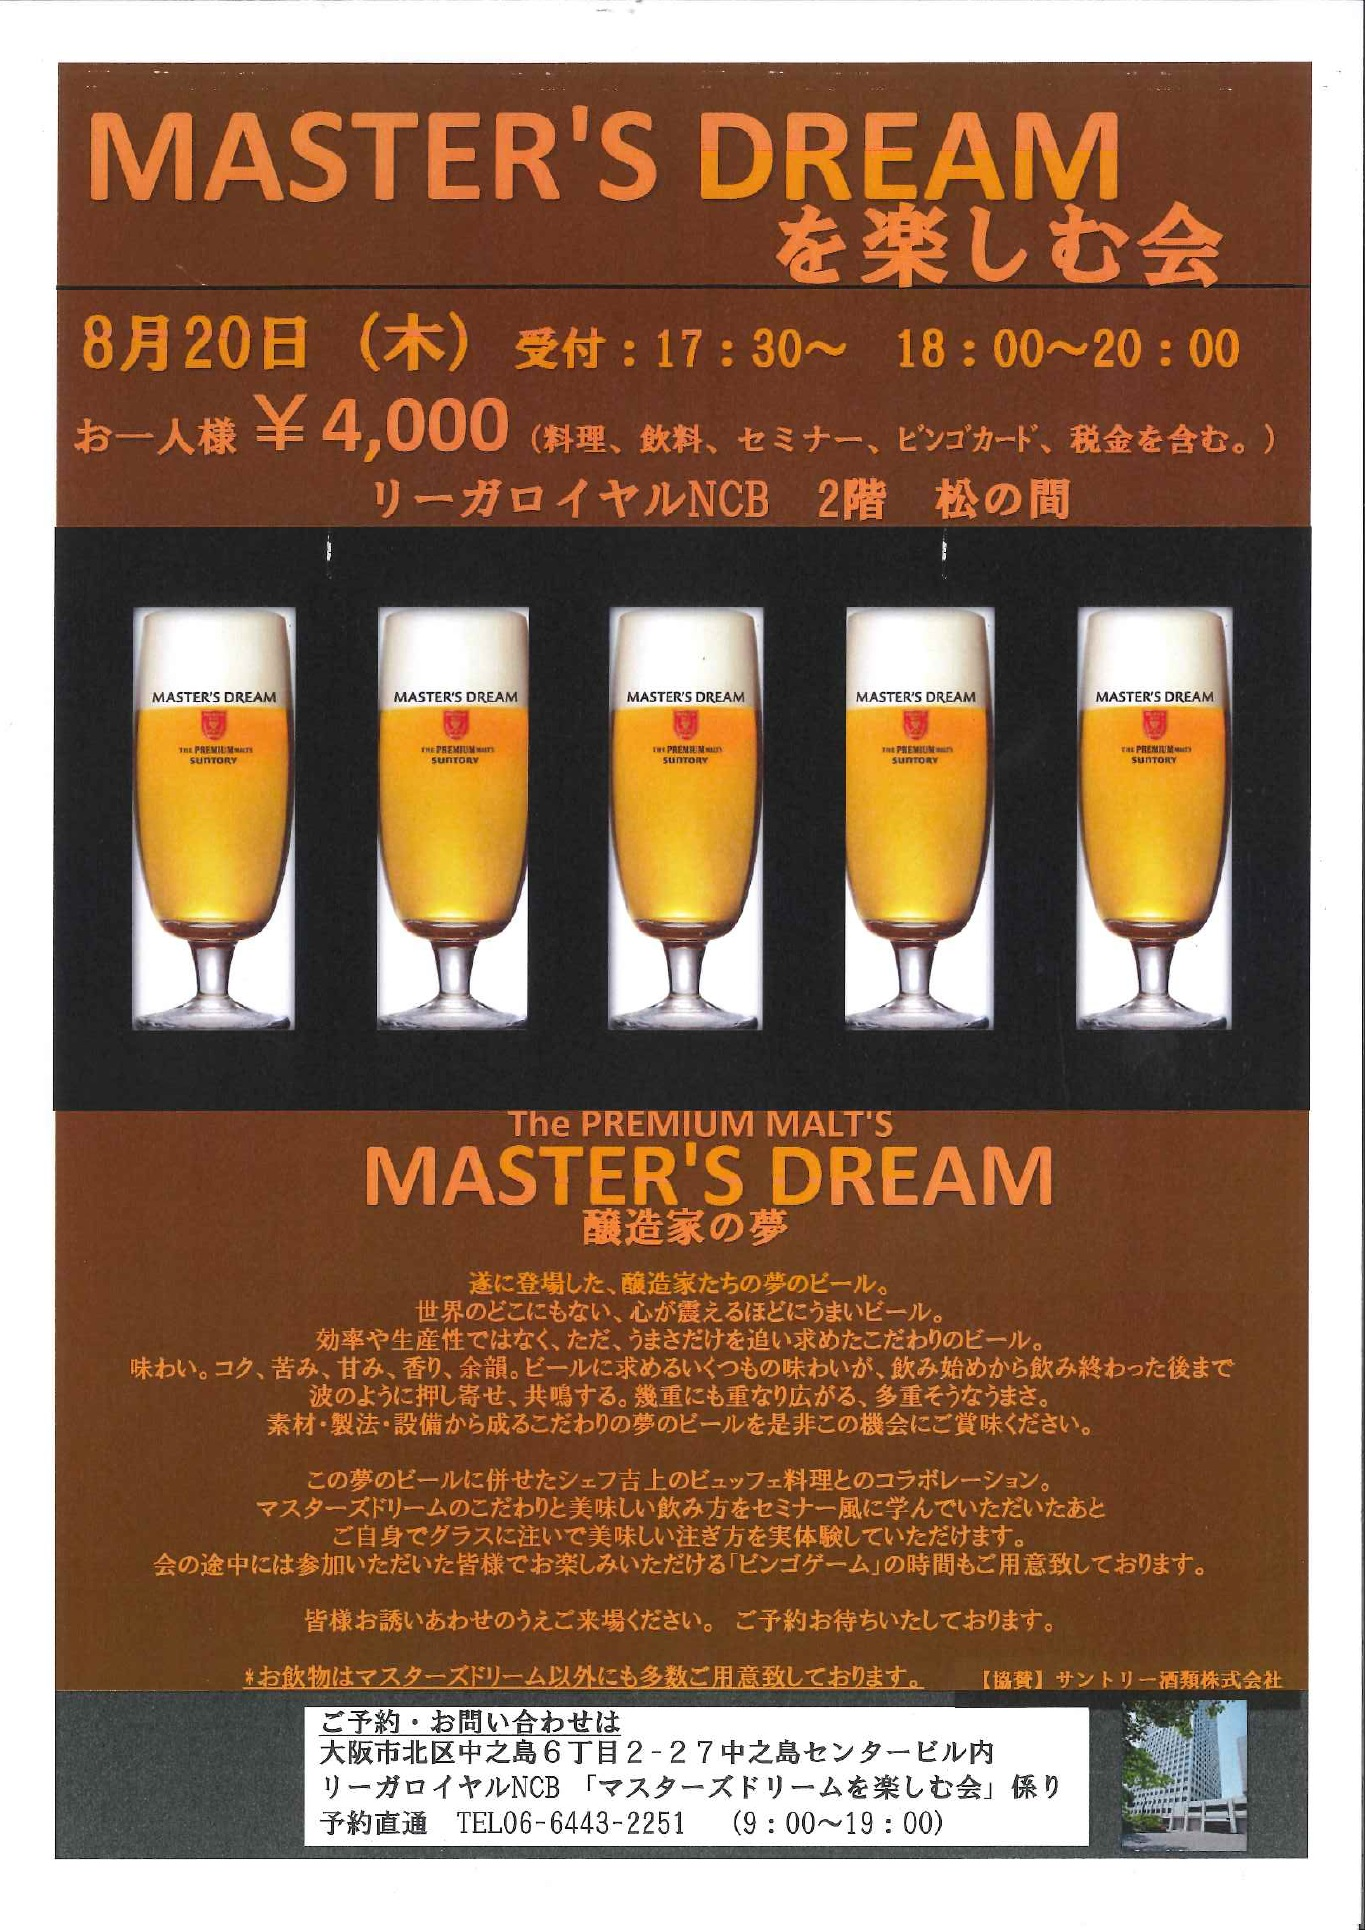 「The Premium Malt's  Master's  Dream」を楽しむ会